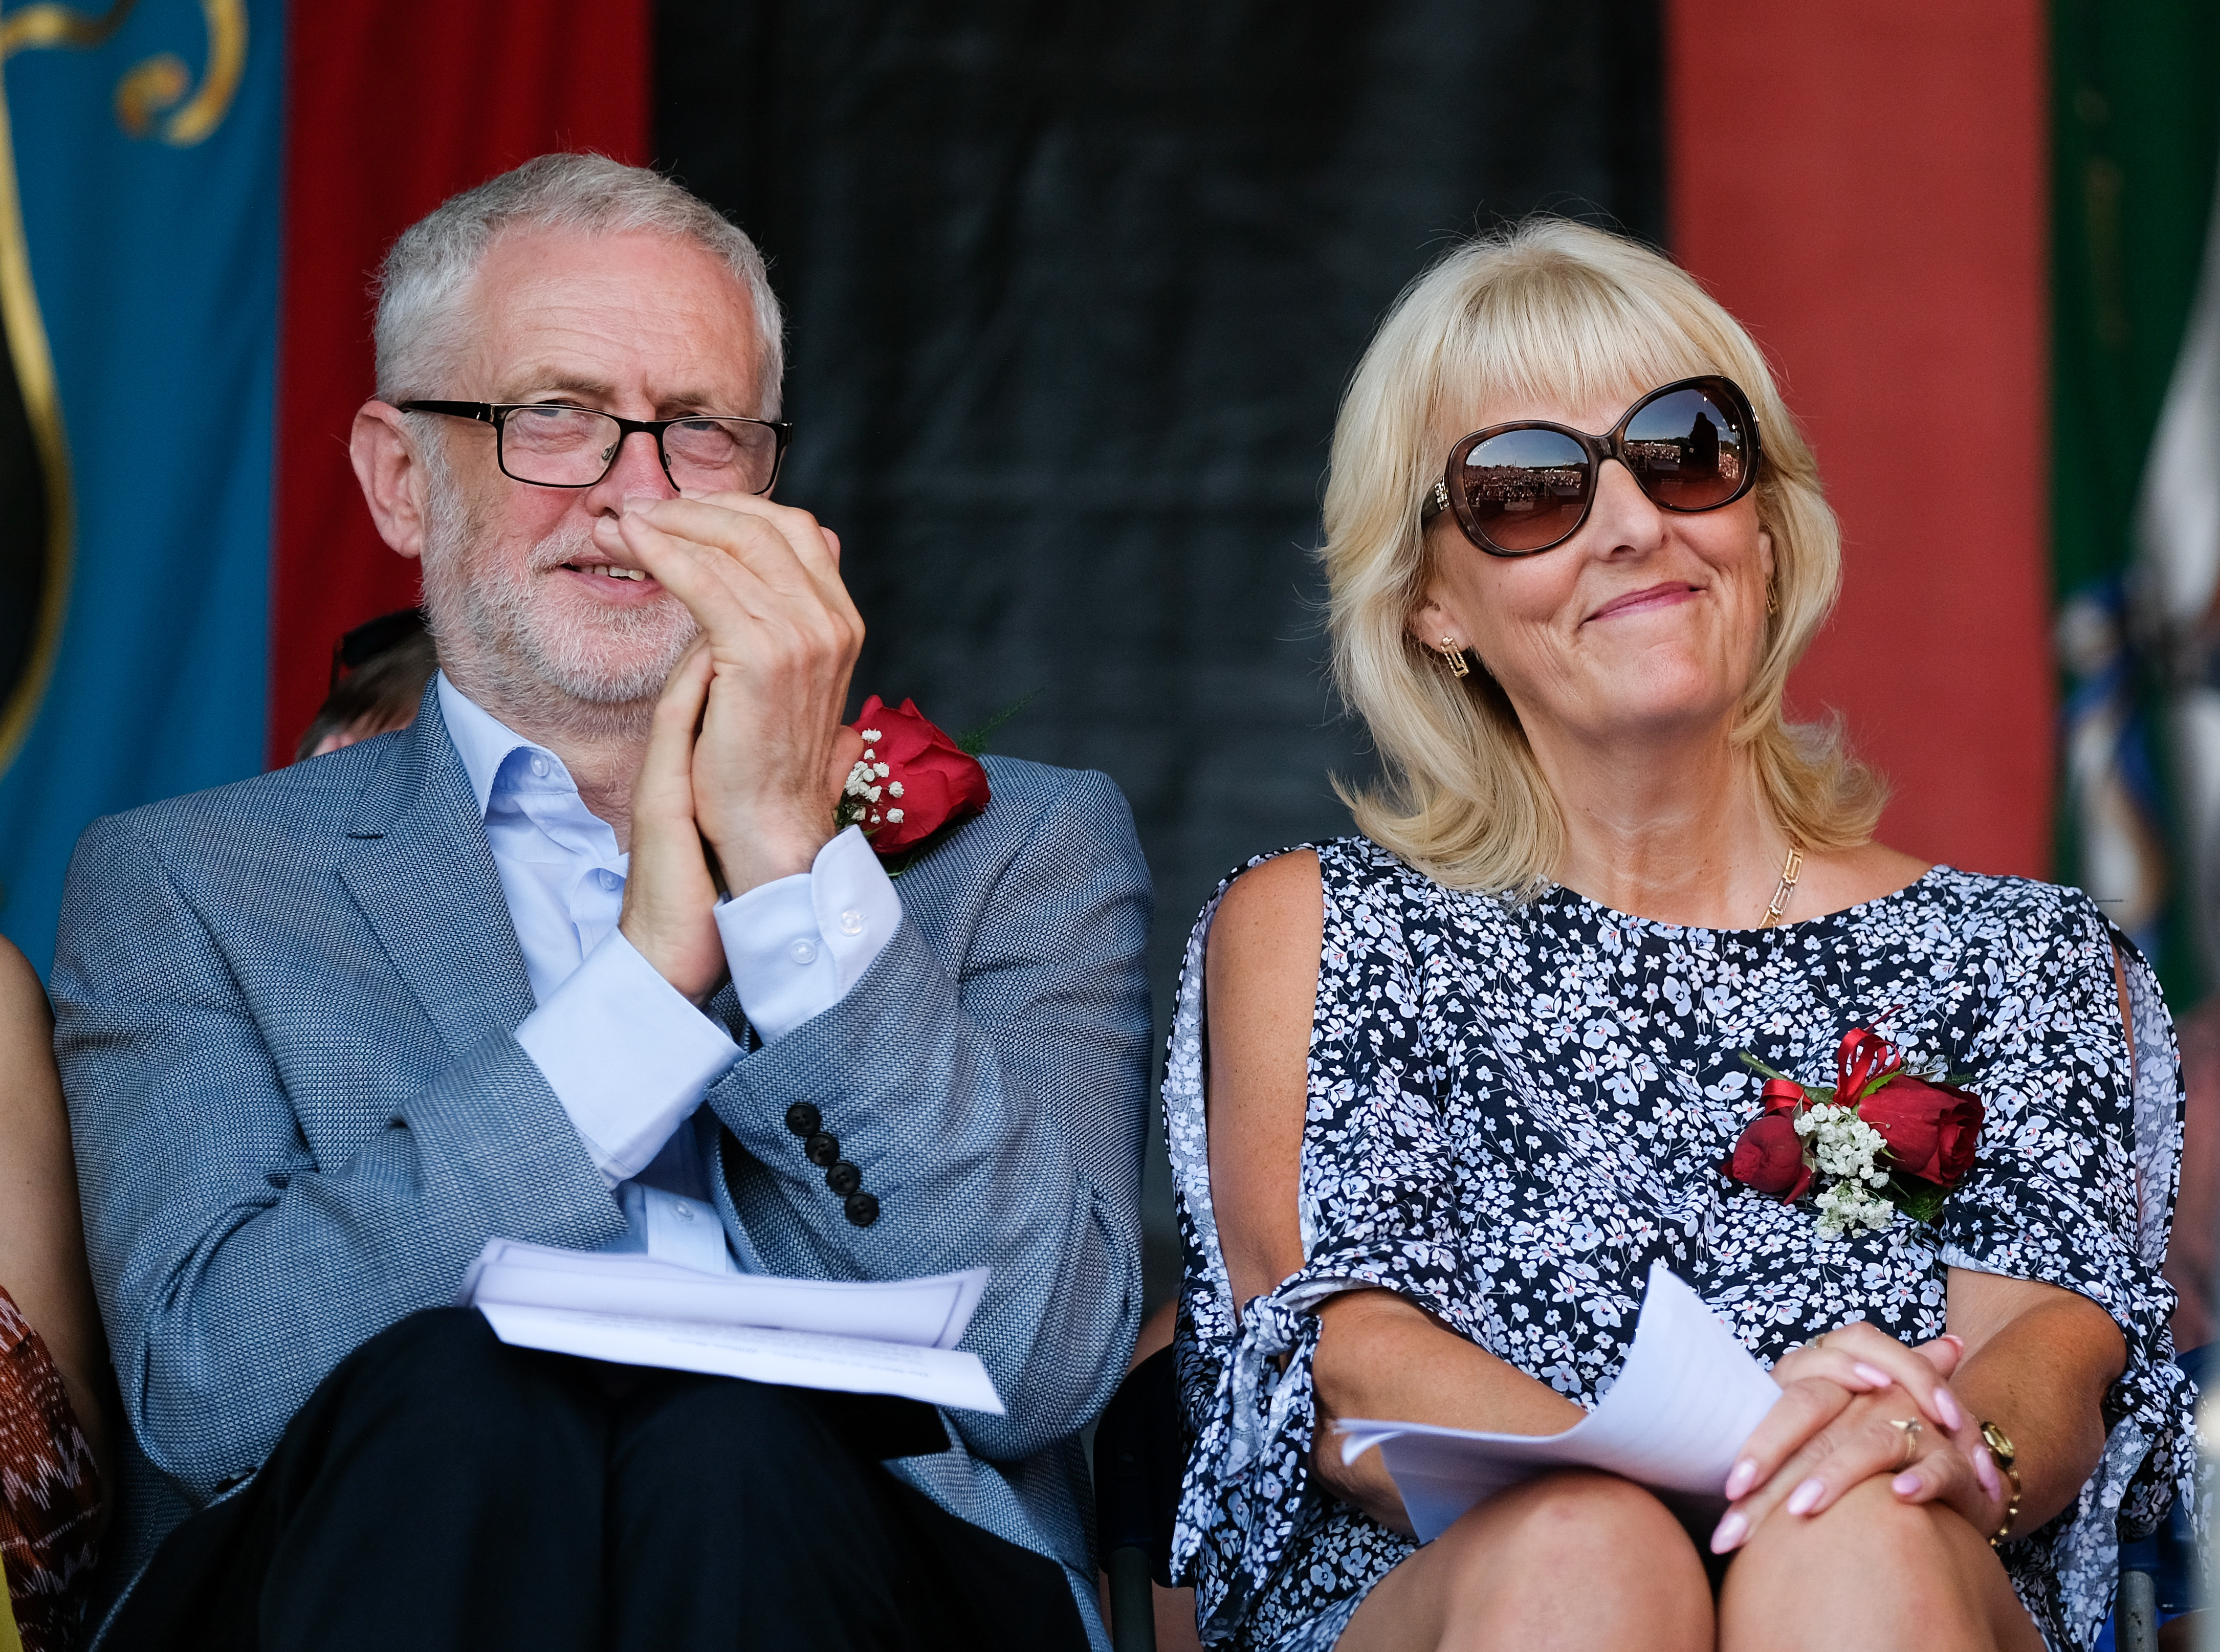 DURHAM, ENGLAND - JULY 14: Labour leader Jeremy Corbyn applauds as he sits with Labour General Secretary Jennie Formby and listens to speeches during the 134th Durham Miners' Gala on July 14, 2018 in Durham, England. Over two decades after the last pit closed in the Durham coalfield the Miners Gala or Big Meeting as it is known locally remains as popular as ever with over 200,000 people expected to attend this year. The gala forms part of the culture and heritage of the area and represents the communal values of the North East of England. The gala sees traditional colliery brass bands march through the city ahead of their respective pit banners before pausing to play outside the County Hotel building where union leaders, invited guests and dignitaries gather before then continuing to the racecourse area for a day of entertainment and speeches. Beginning in 1871 the gala is the biggest trade union event in Europe and is part of an annual celebration of socialism.  (Photo by Ian Forsyth/Getty Images)